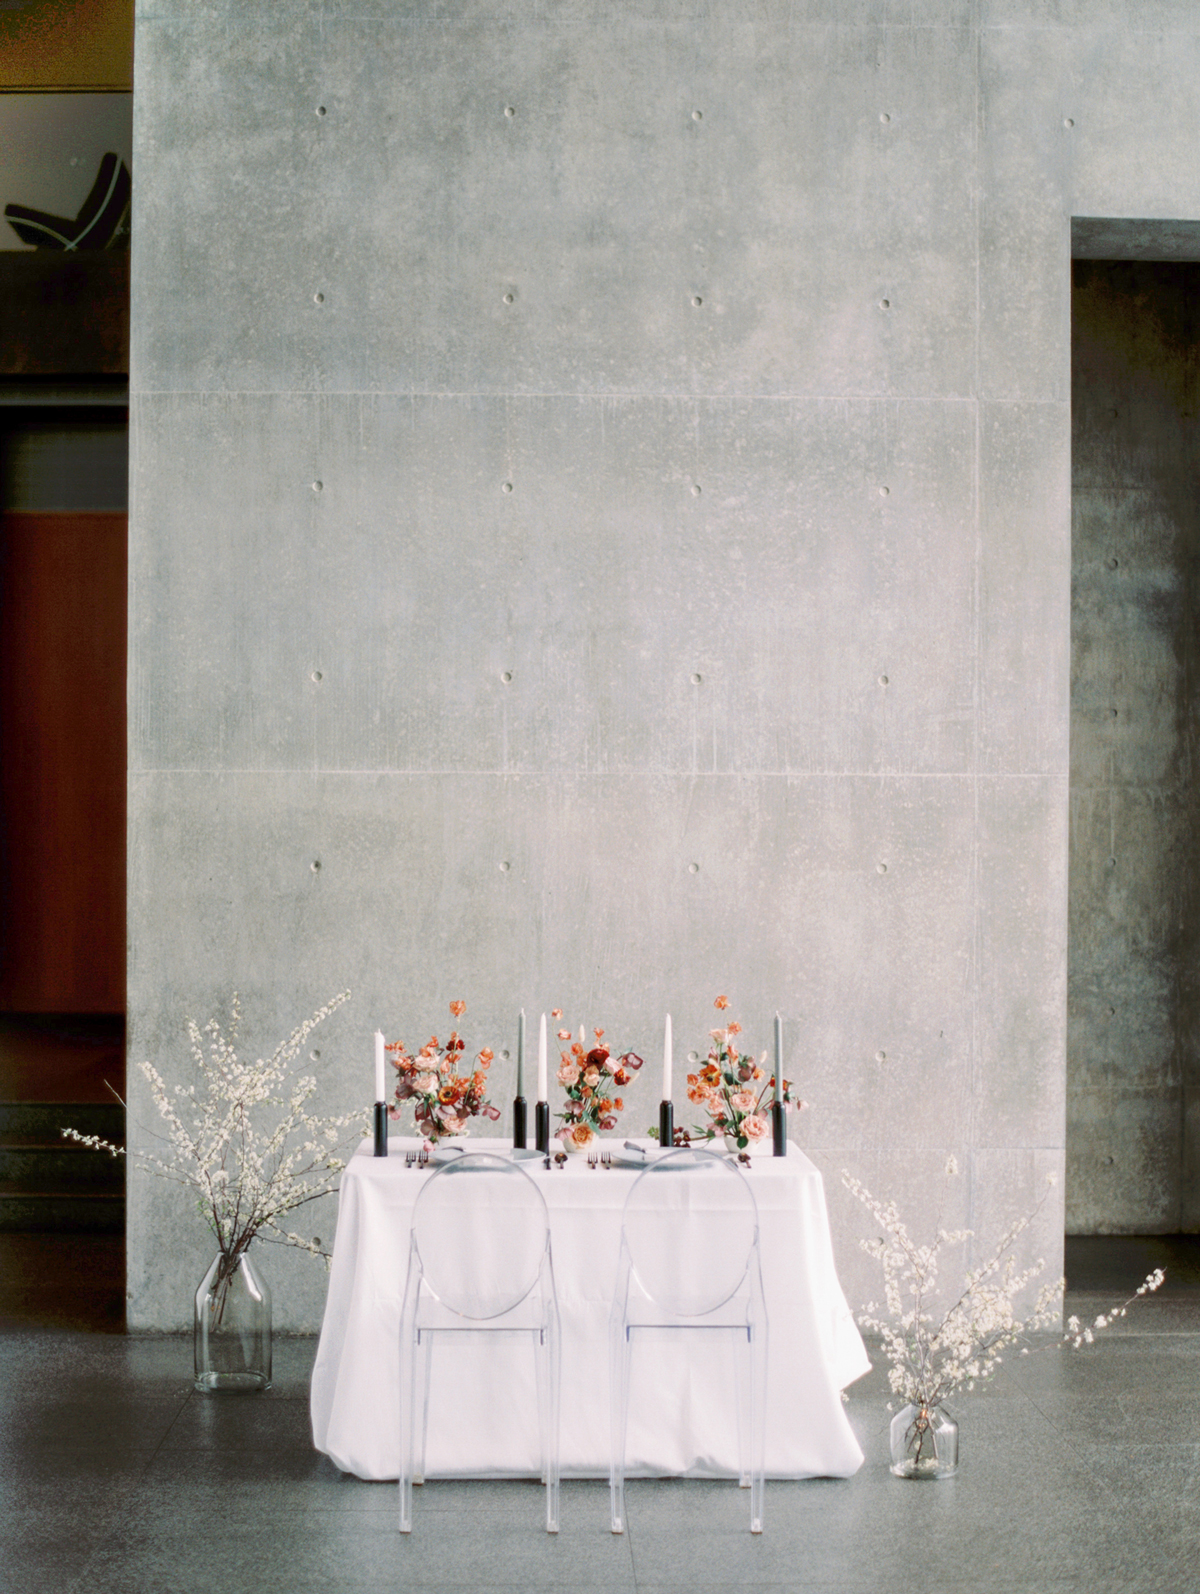 concrete slab backdrop behind sweetheart table